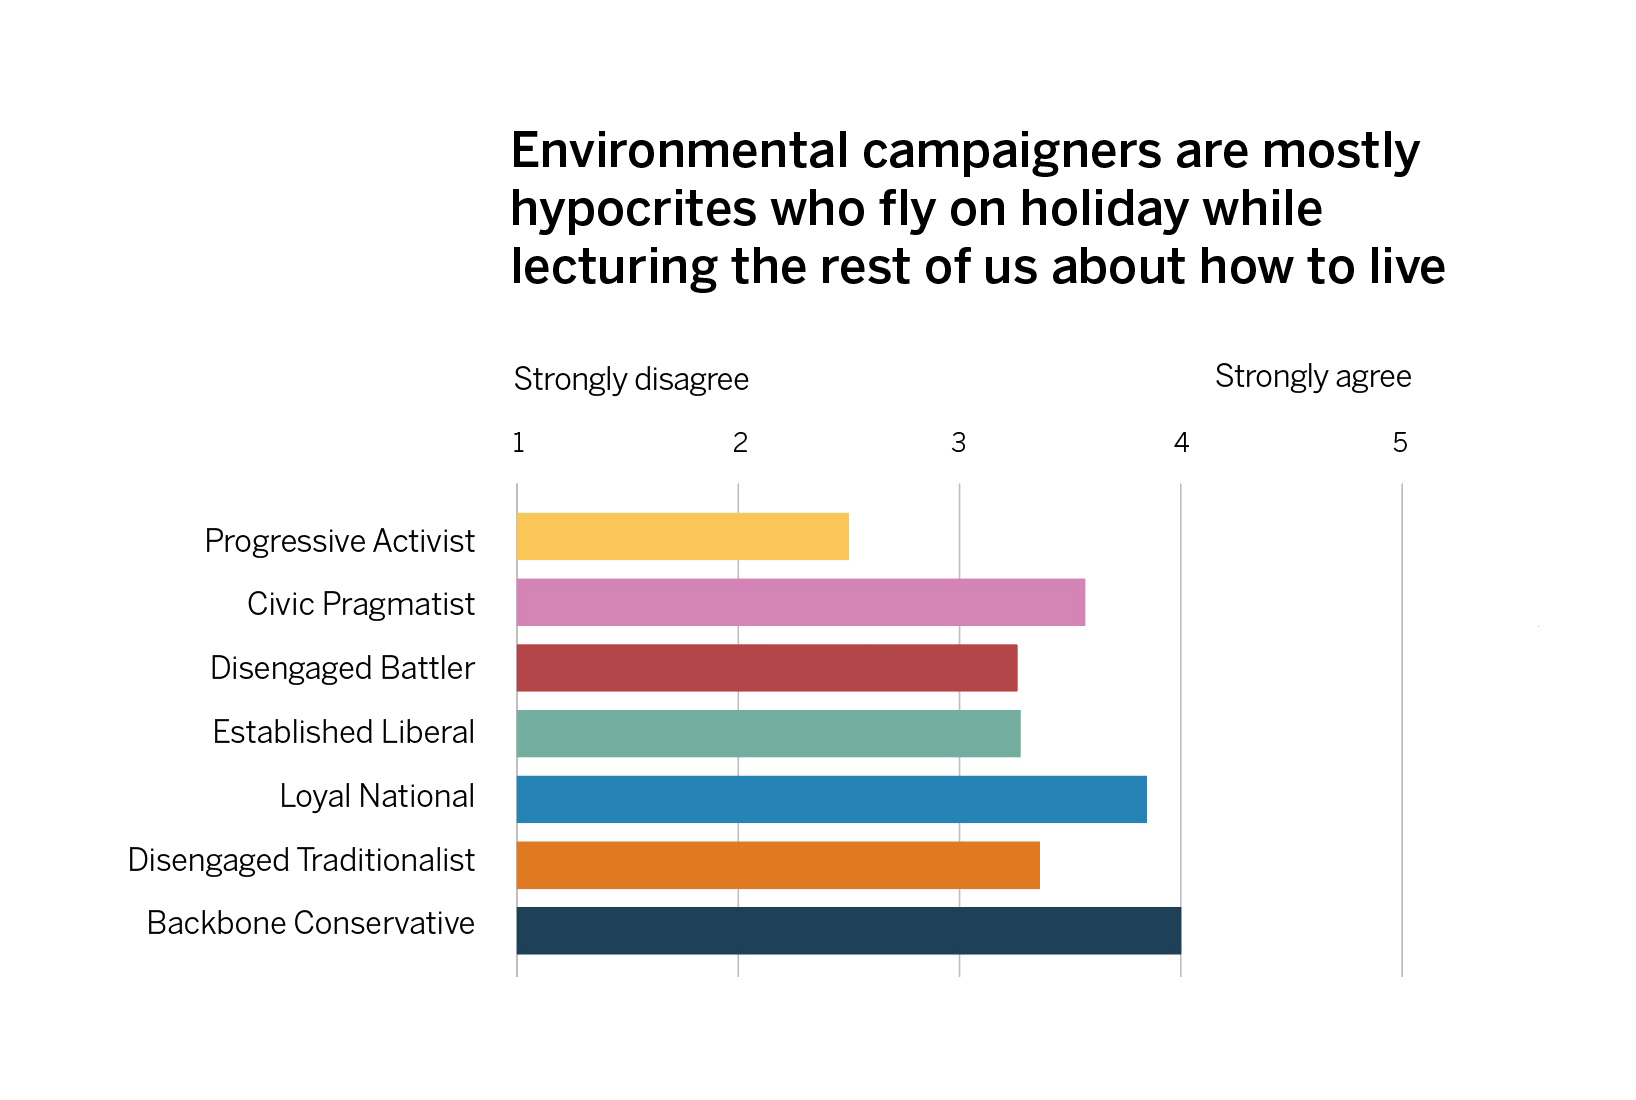 Average level of agreement per segment that environmental campaigners are hypocrites